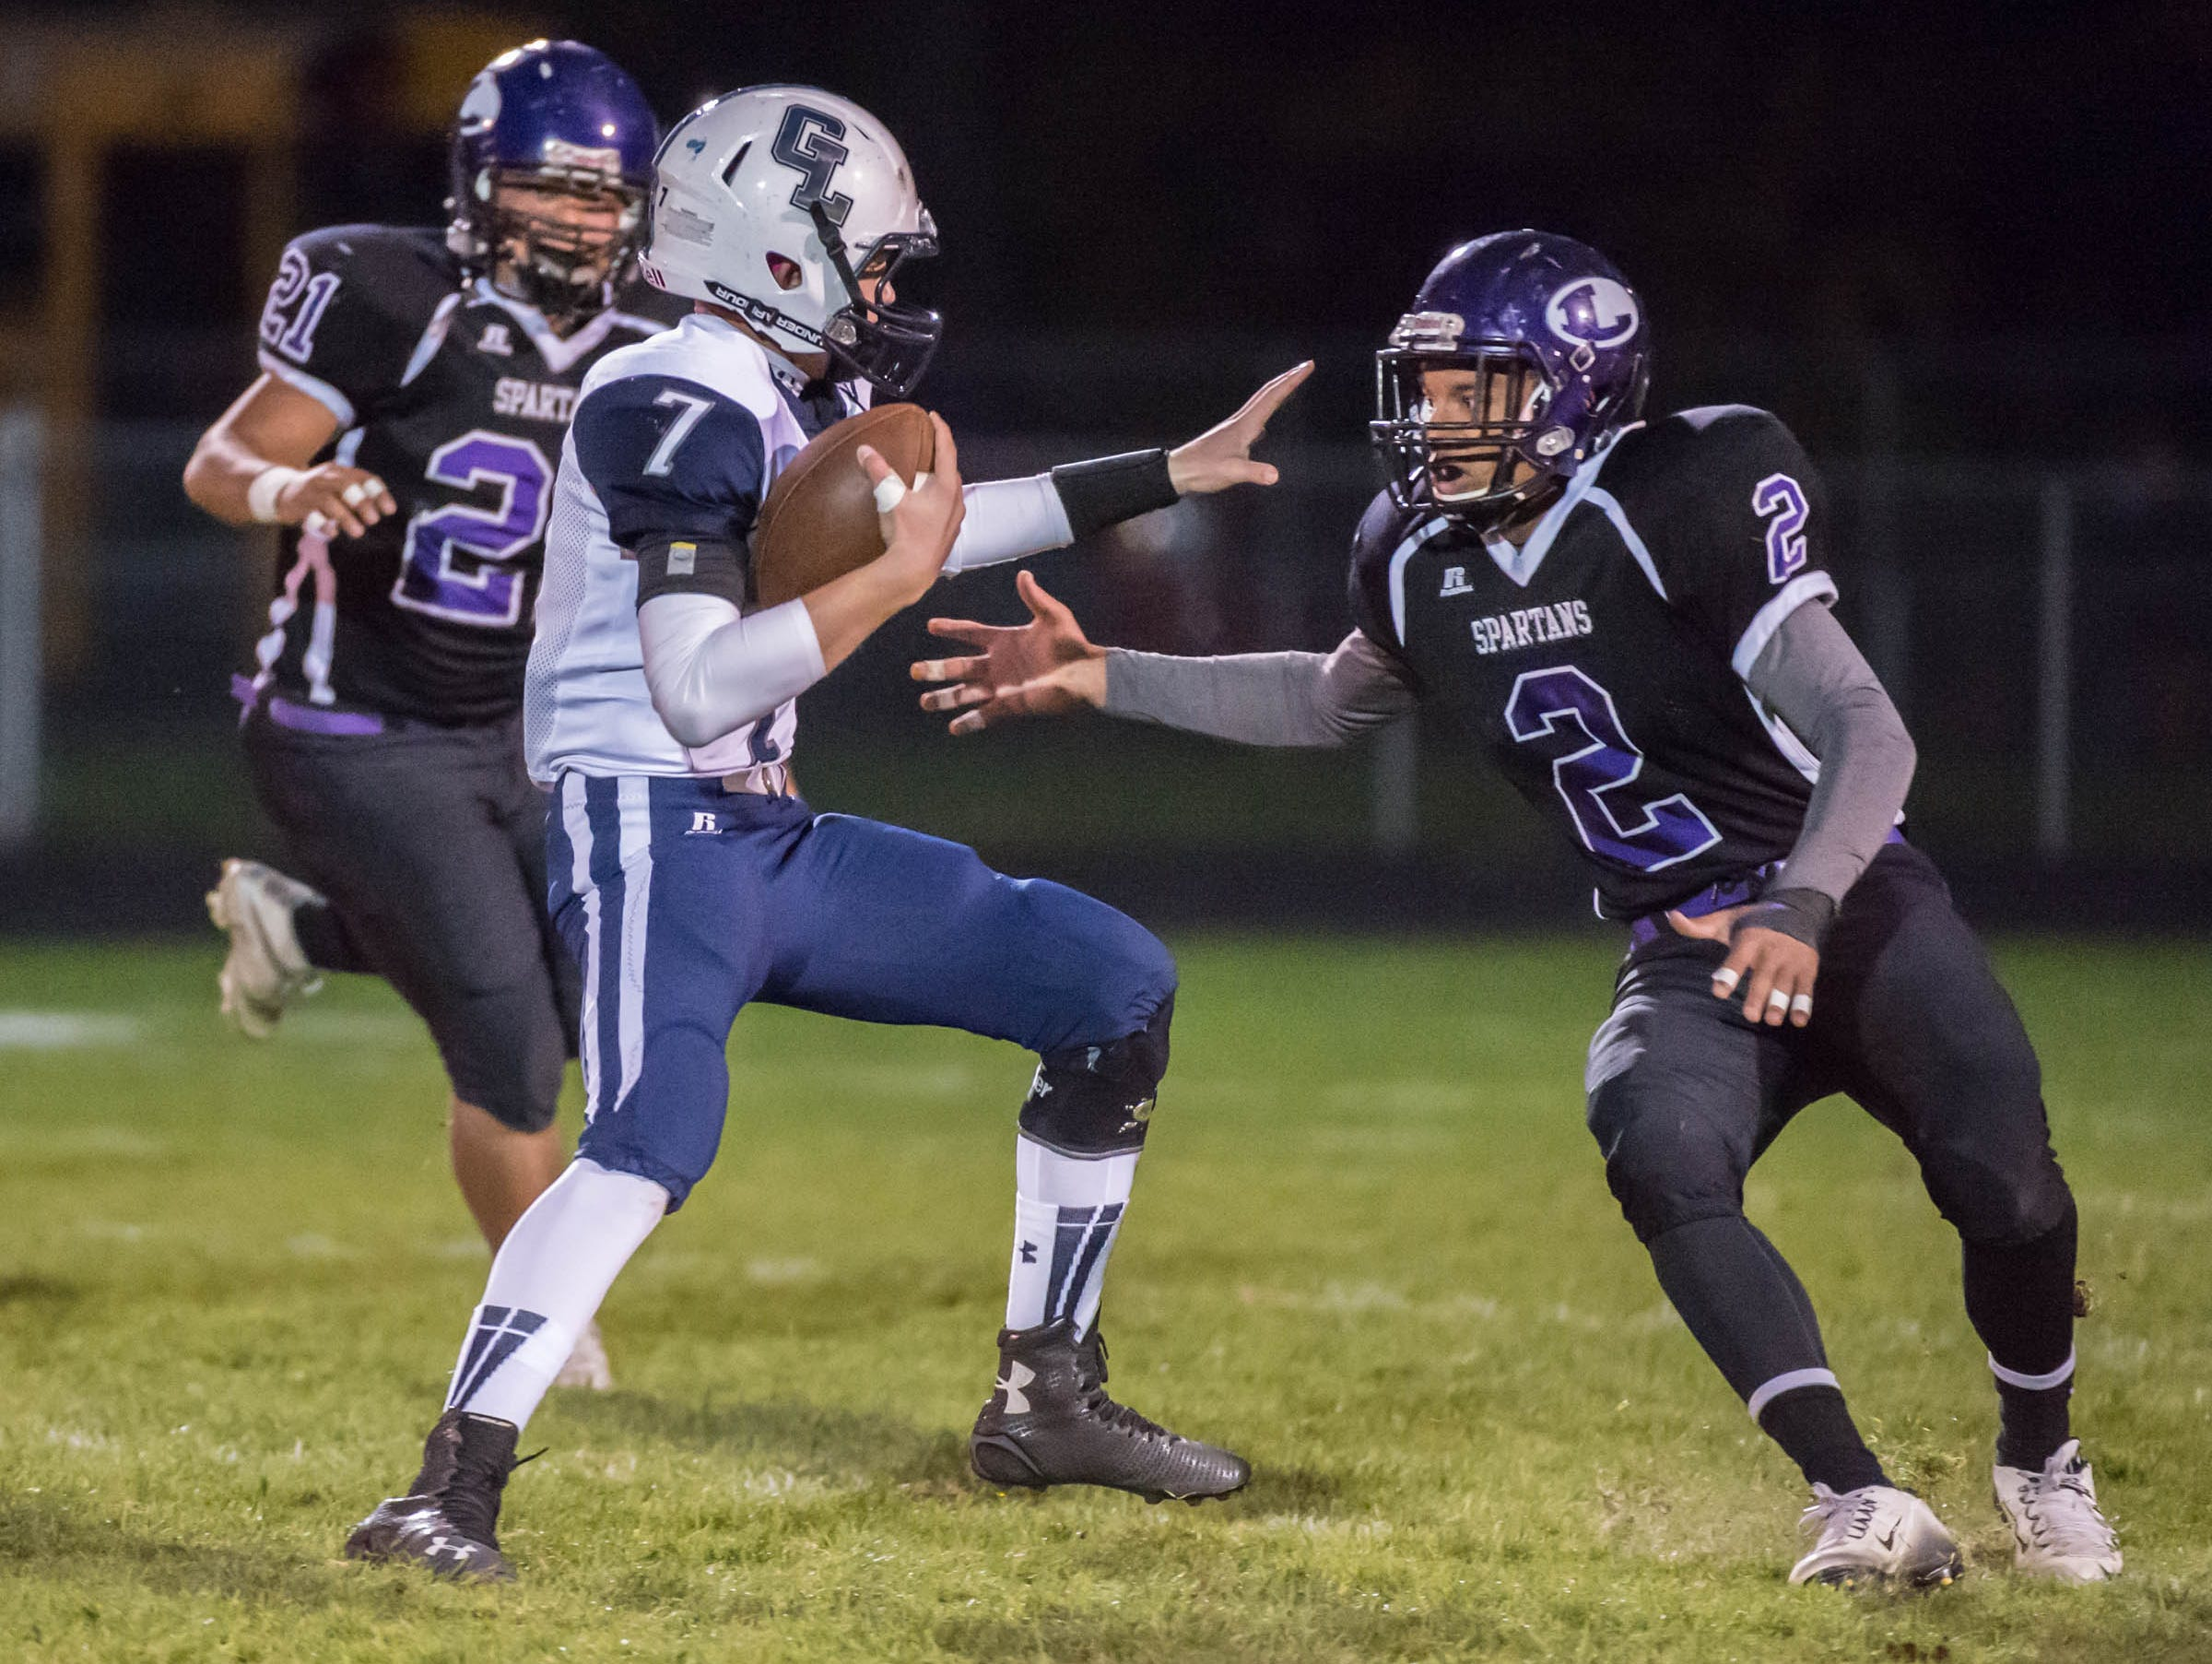 Lakeview's Justyn Jones (2) goes after Gull Lake's Hunter Snyder (7) during Friday's agme against Lakeview.